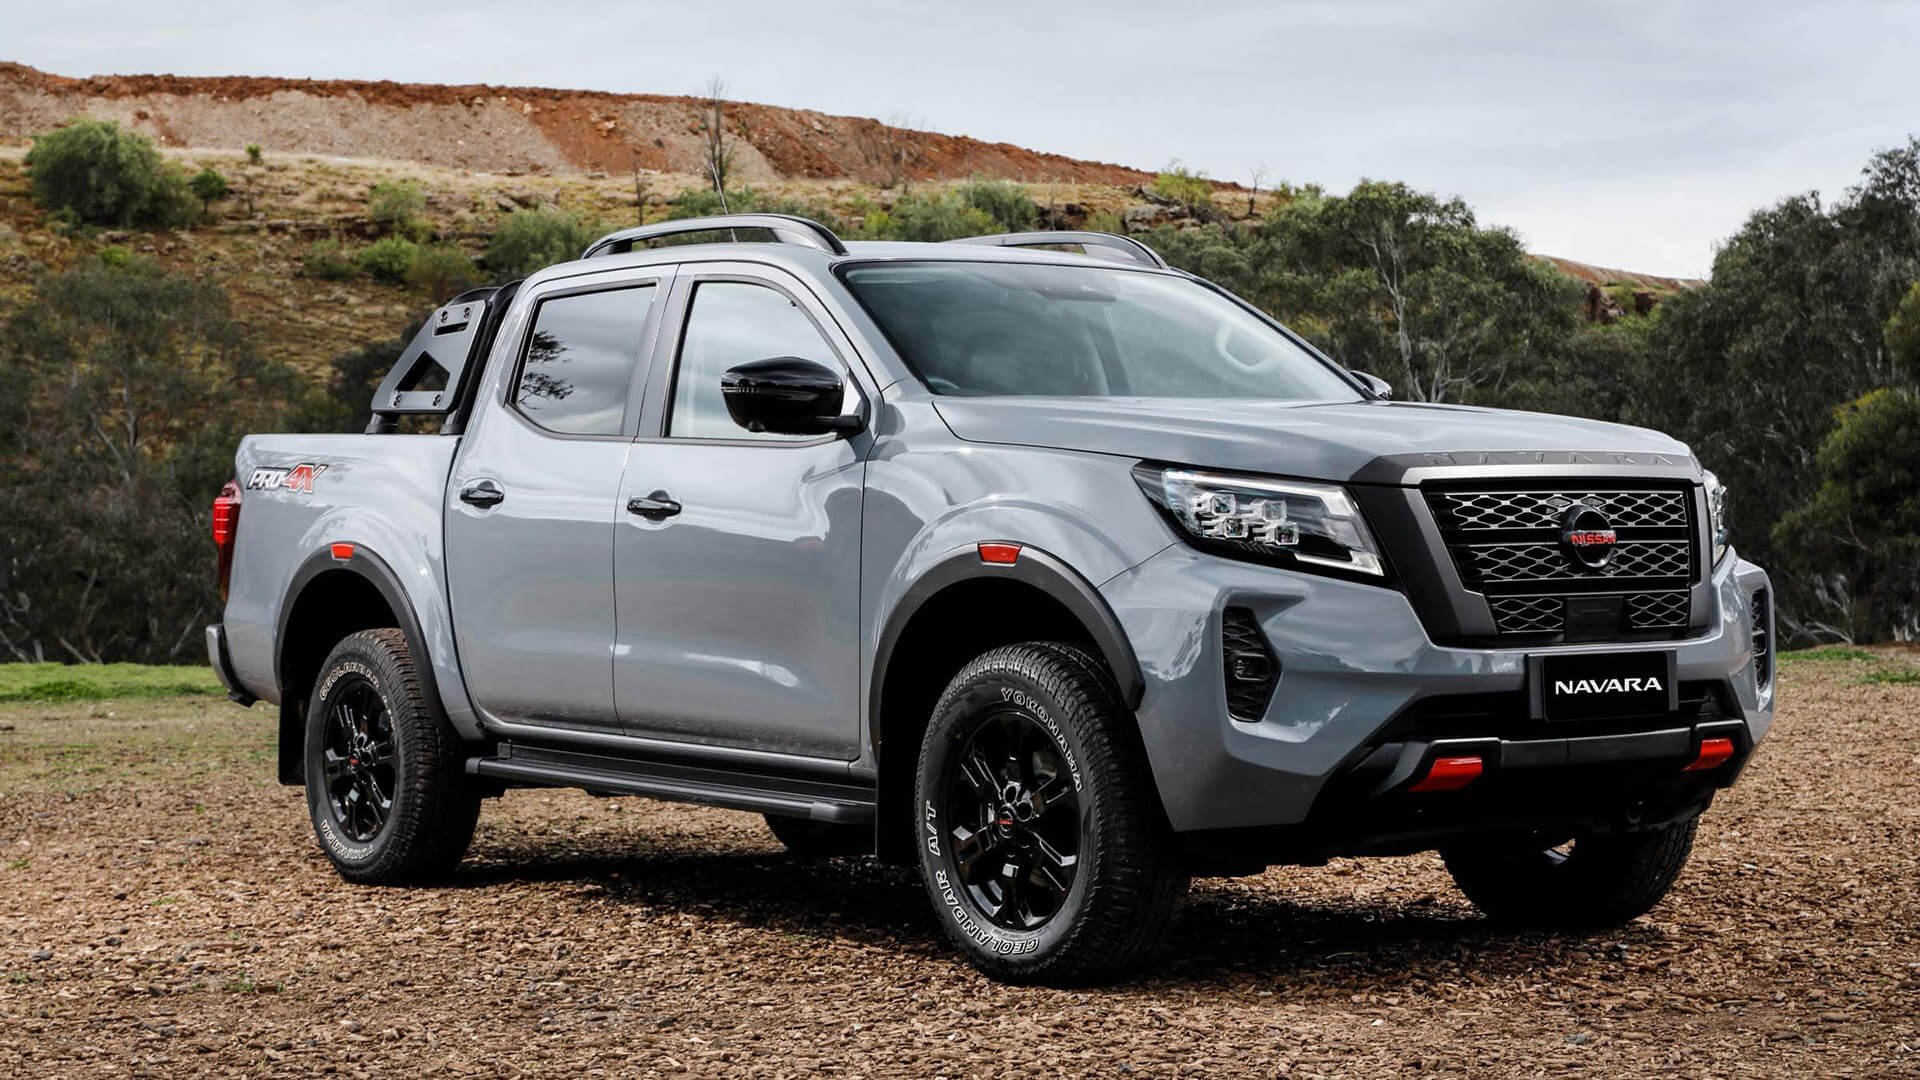 The New Nissan Navara Image